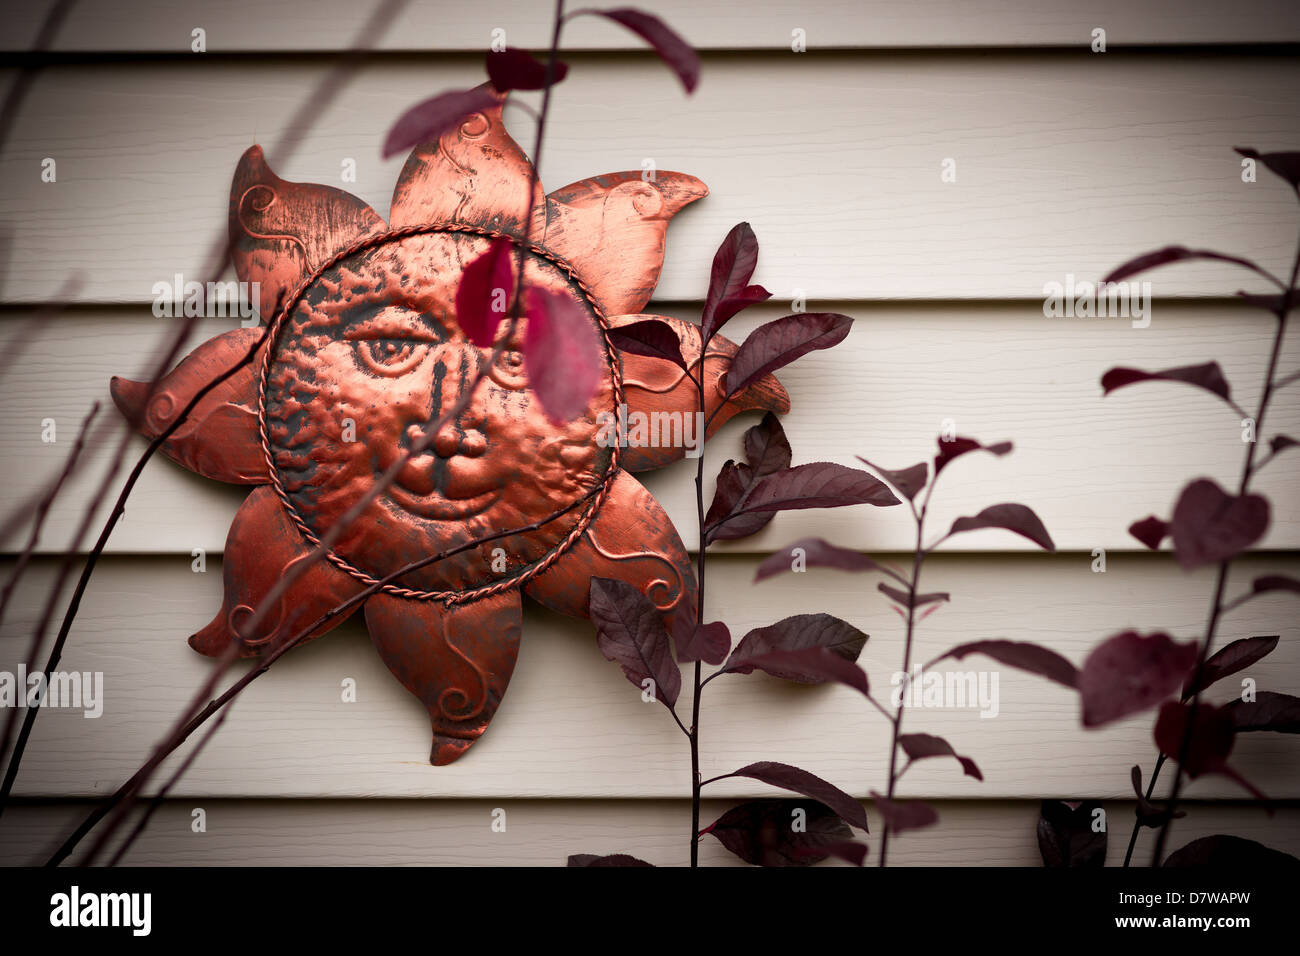 A smiling metal sun face ornament hanging on a wall. Stock Photo